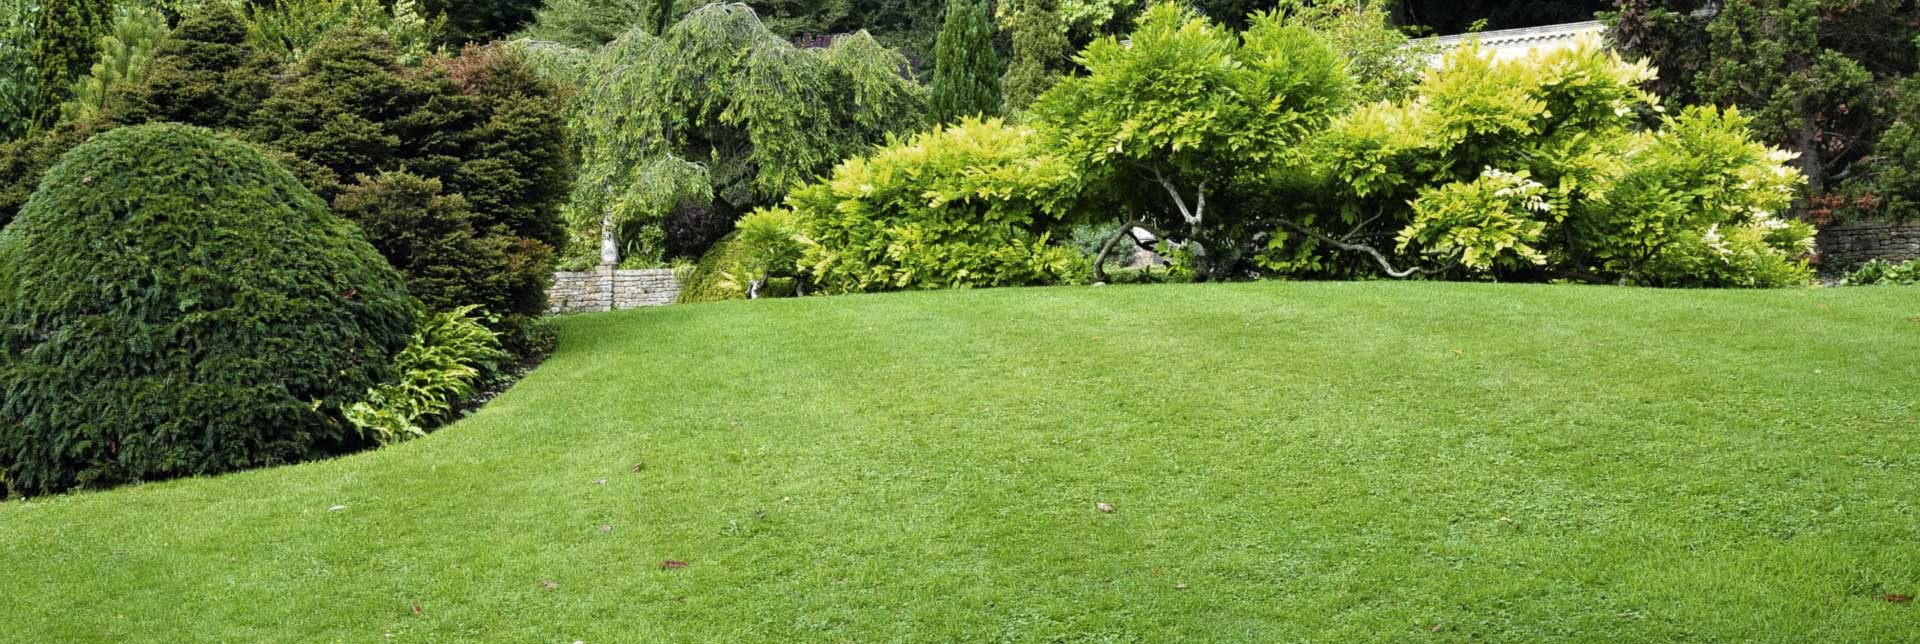 HOA Landscaping Services by Broedell Landscaping company